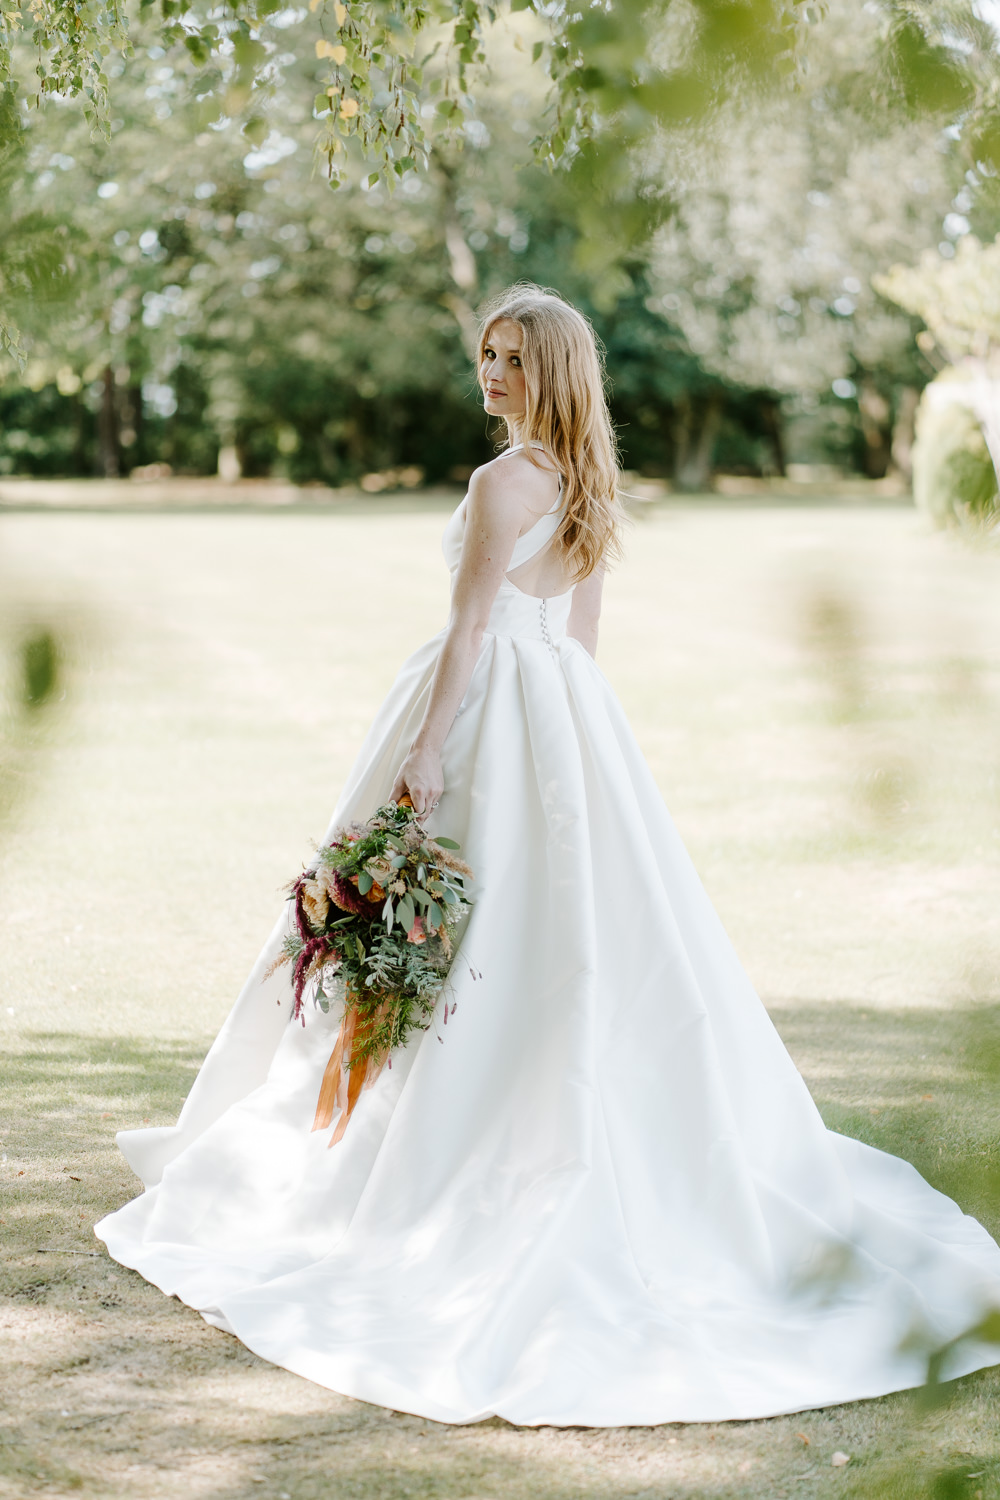 Dress Gown Bride Bridal Train Cross Back Contemporary Wedding Ideas Chloe Ely Photography